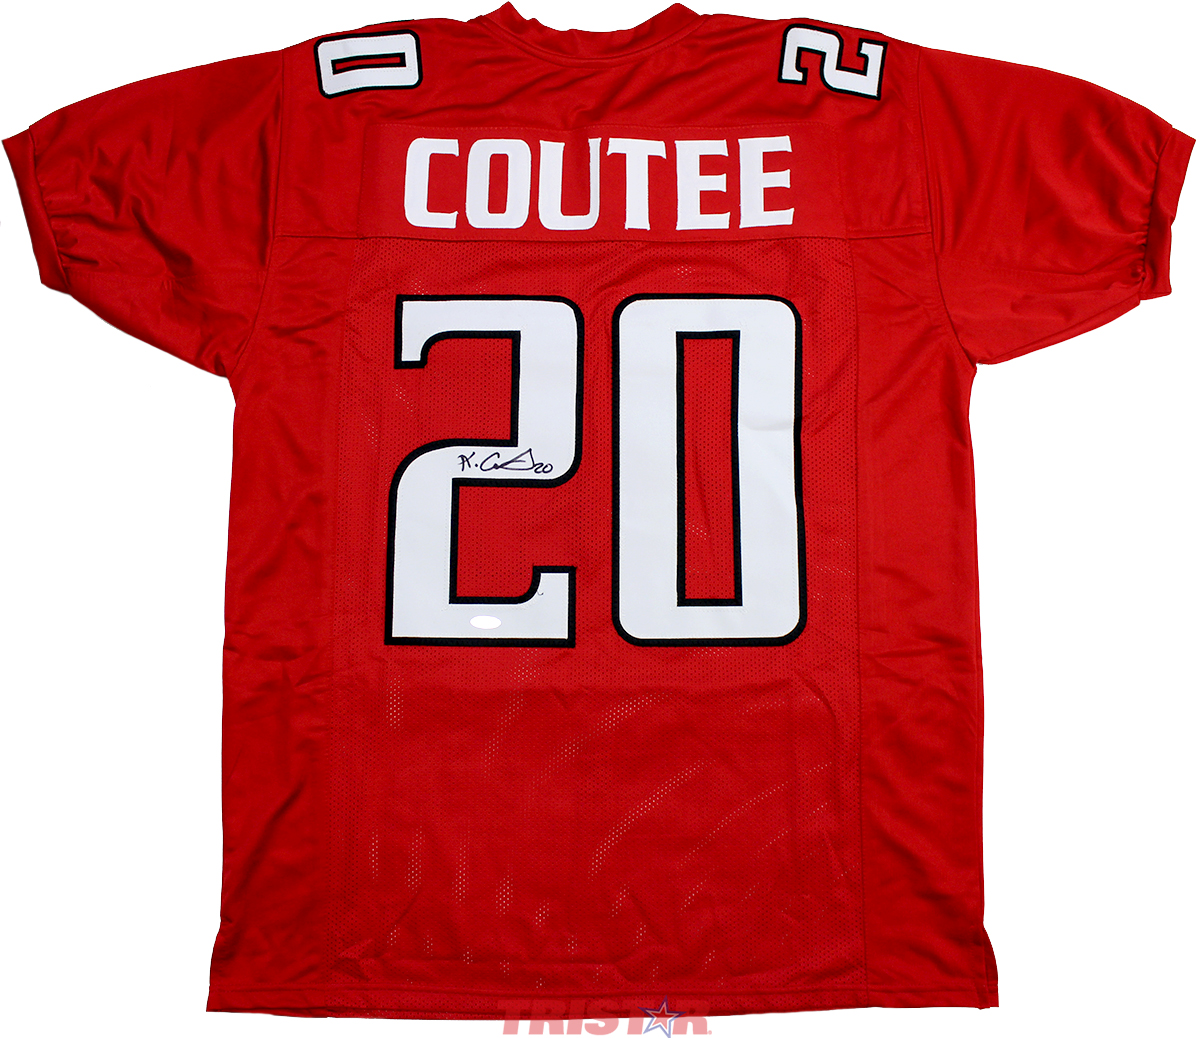 Keke Coutee Jersey